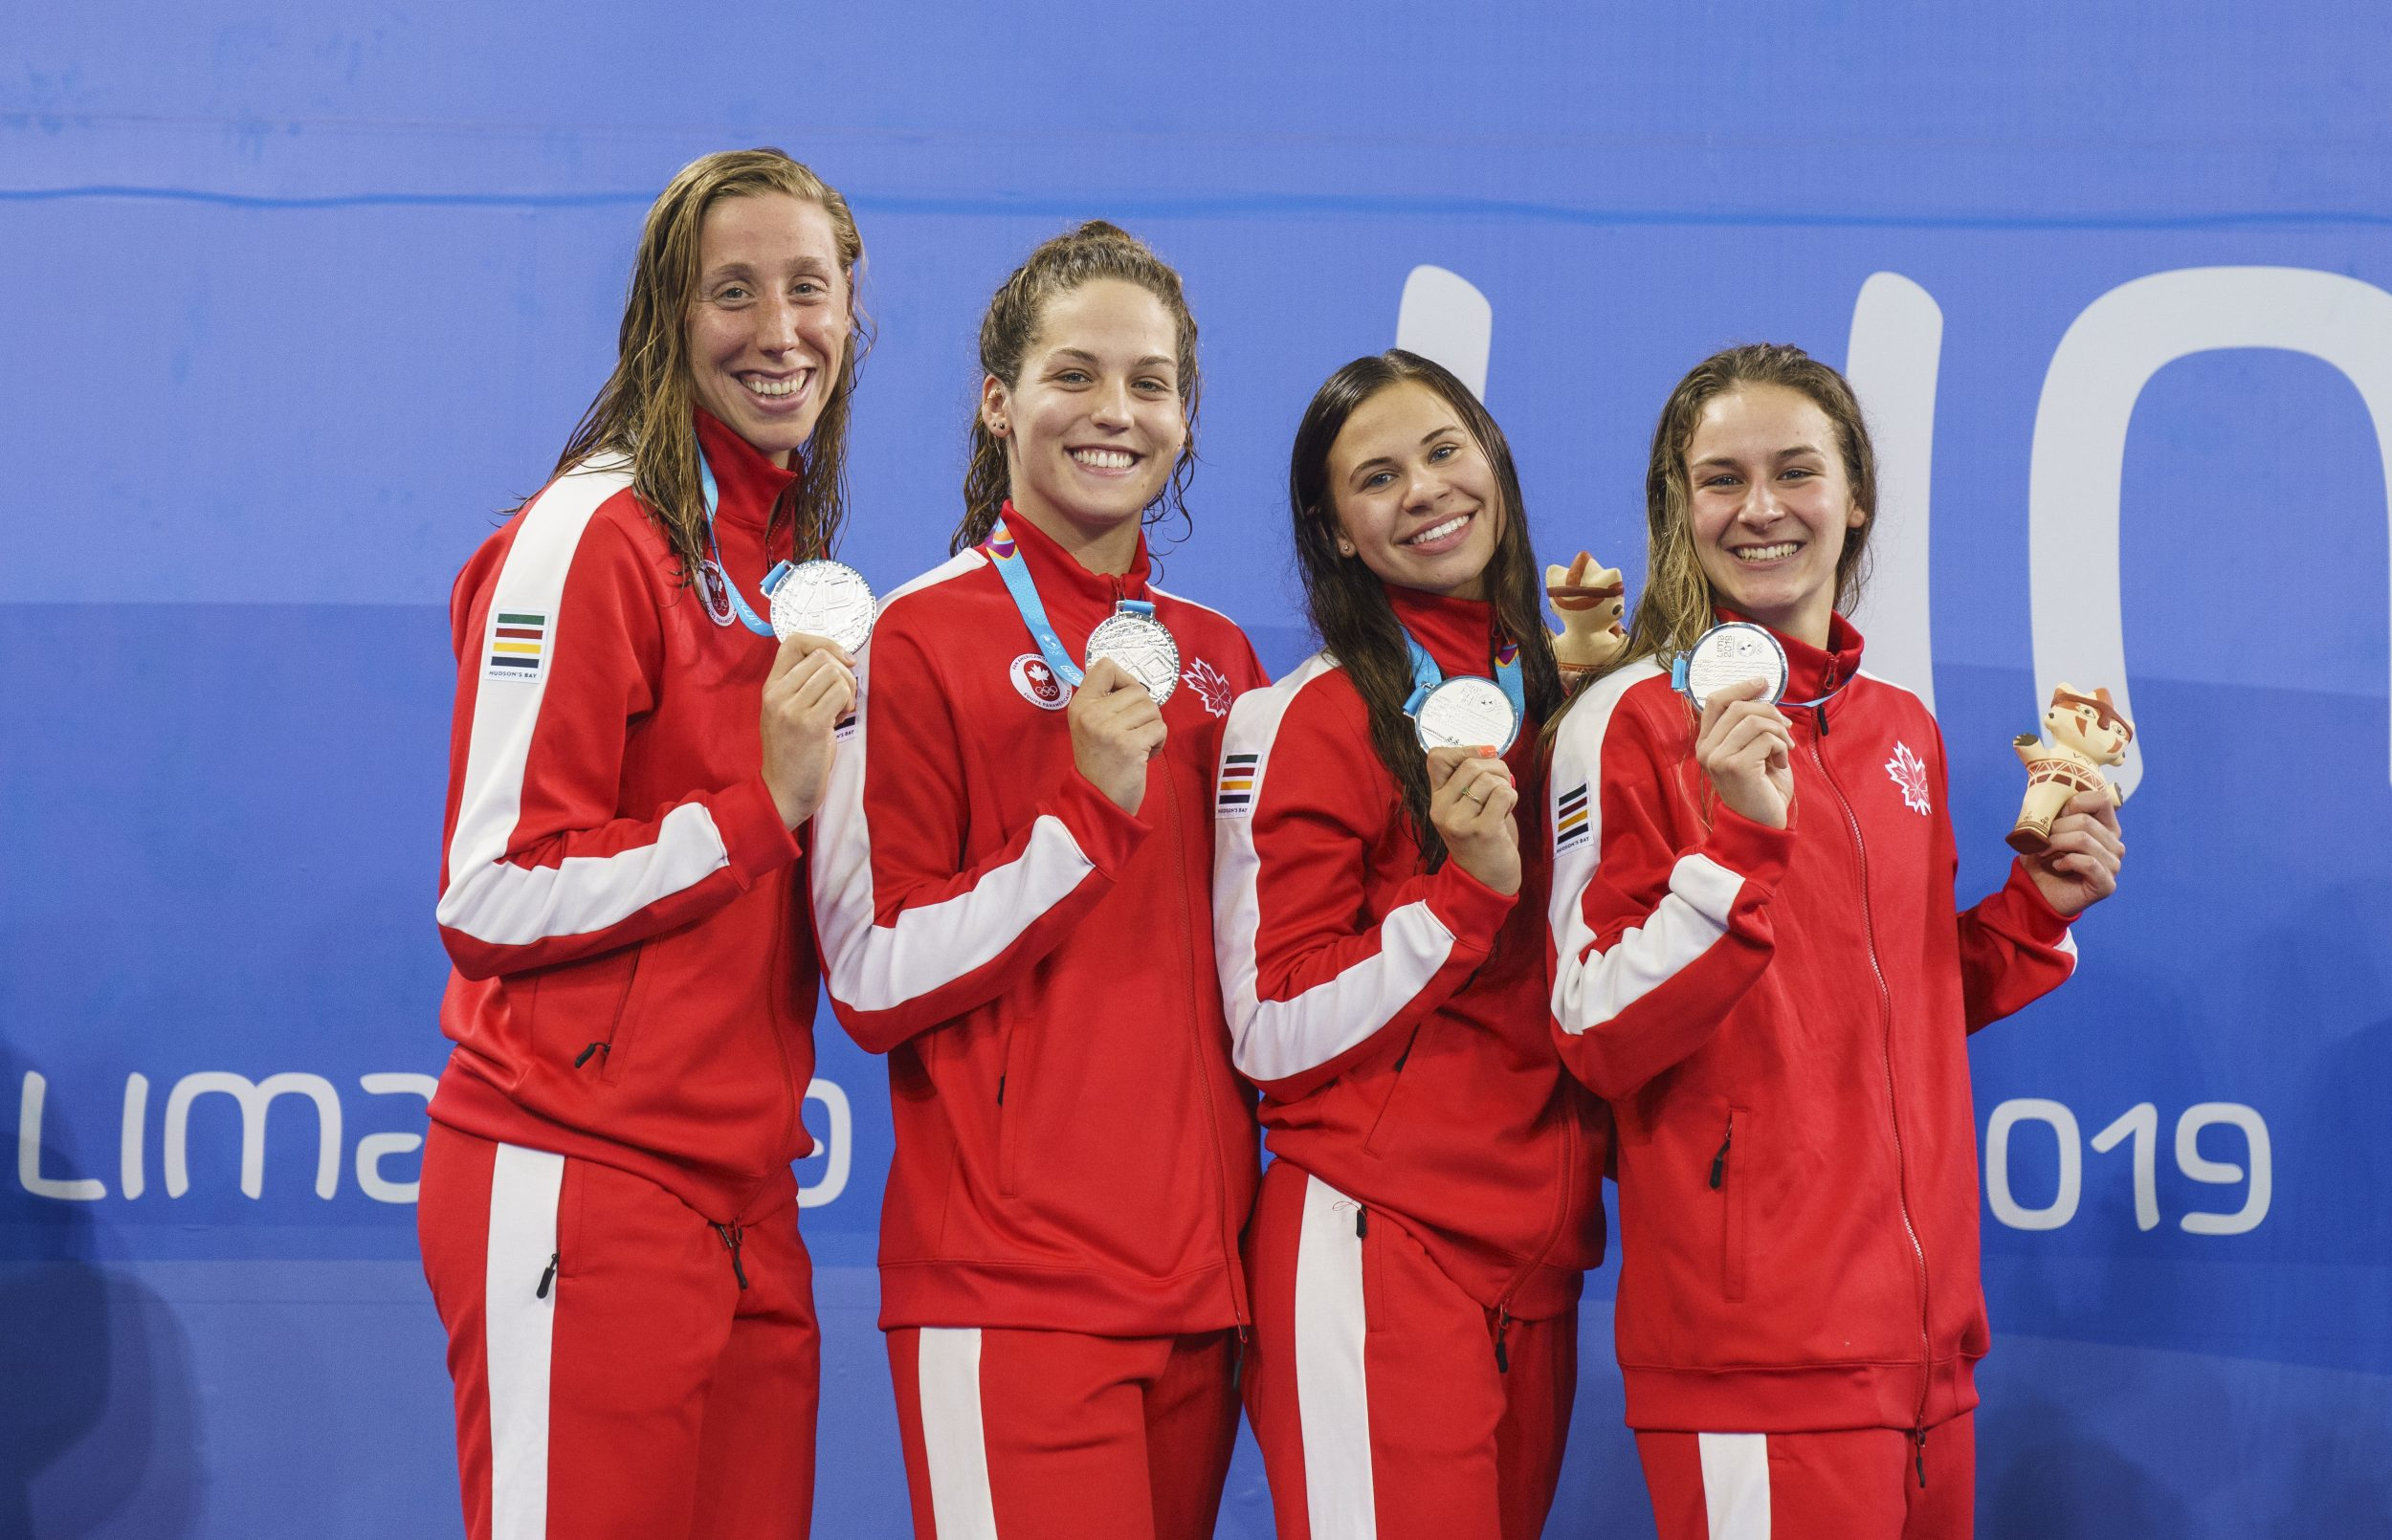 four swimmers stand on the podium holding silver medals